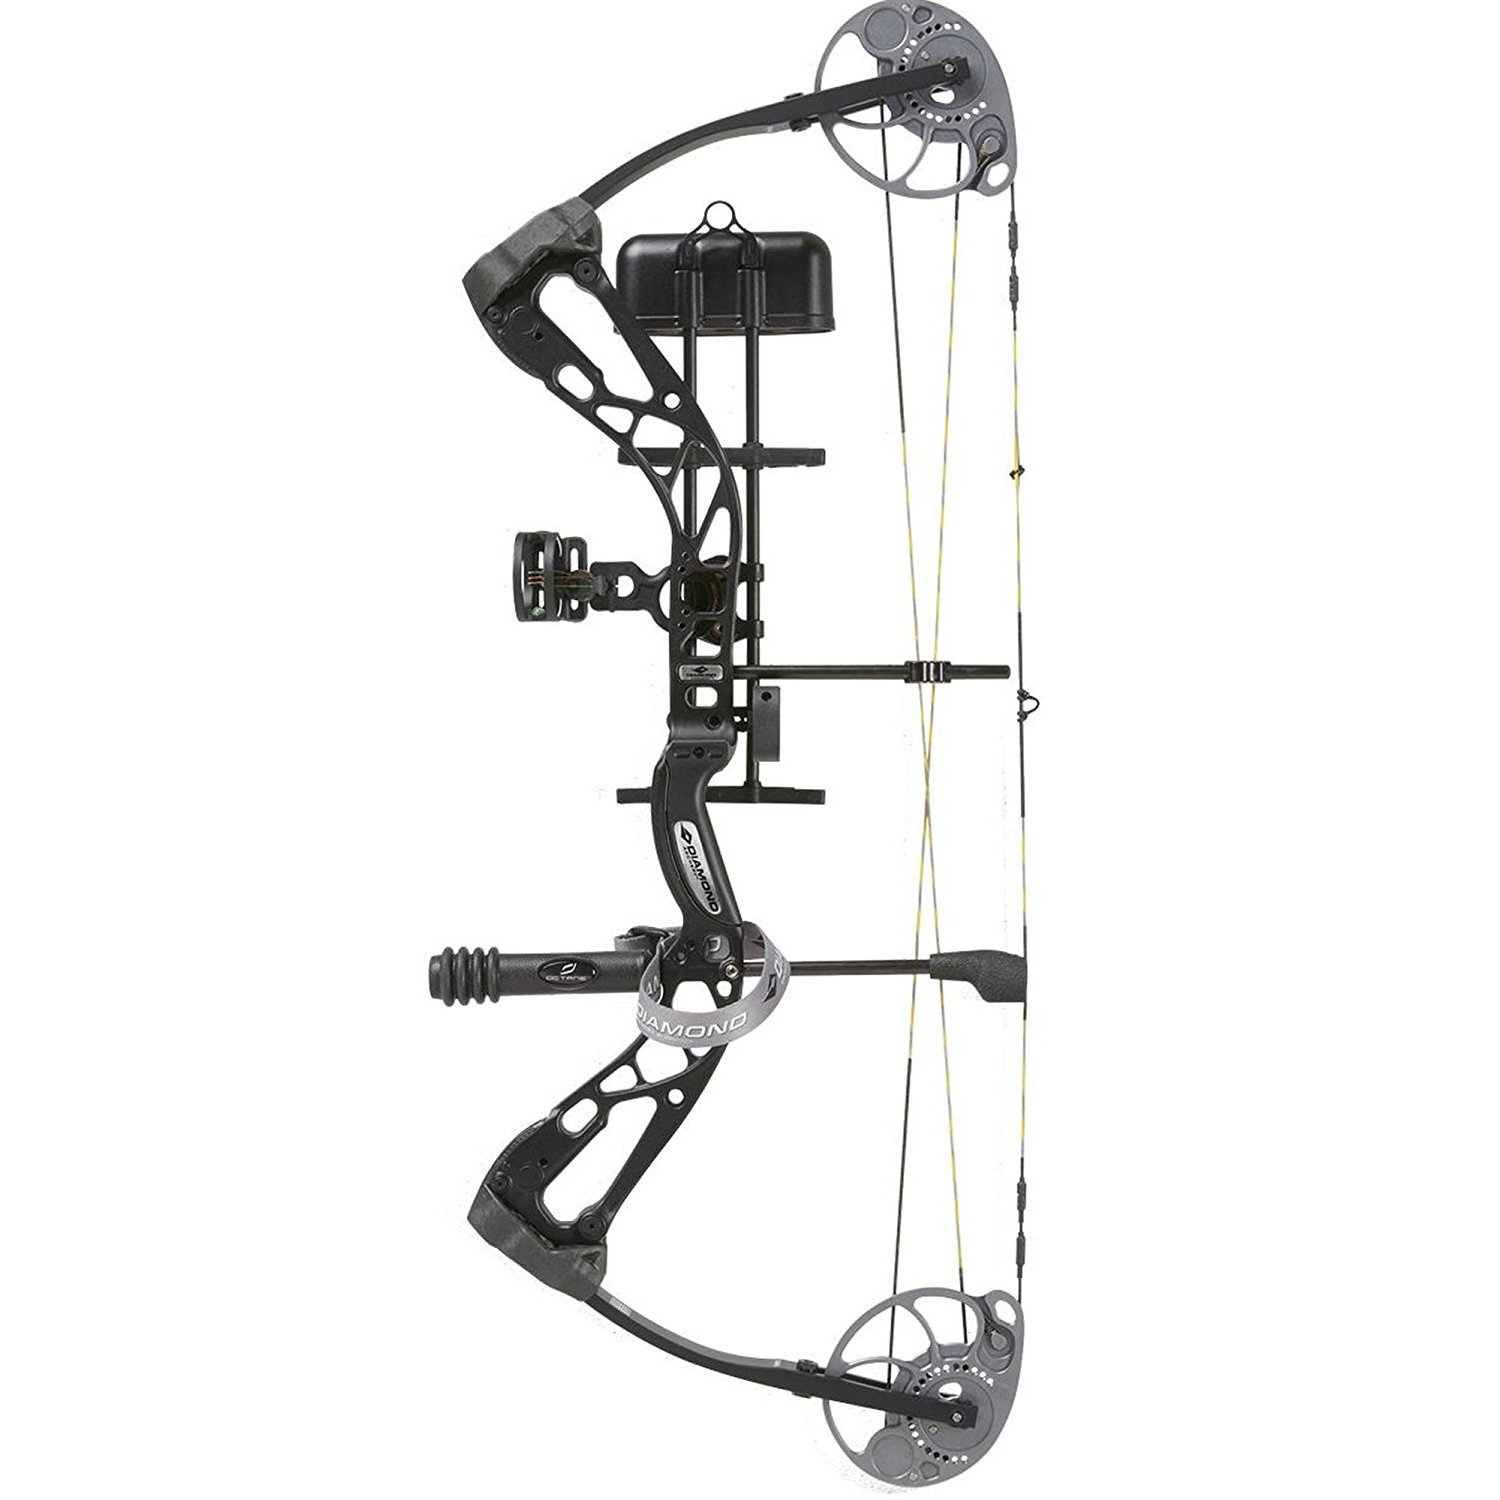 Diamond Archery A12698 16 Edge SB-1 Bow Package Black Right Hand 15-30'' 7-70#